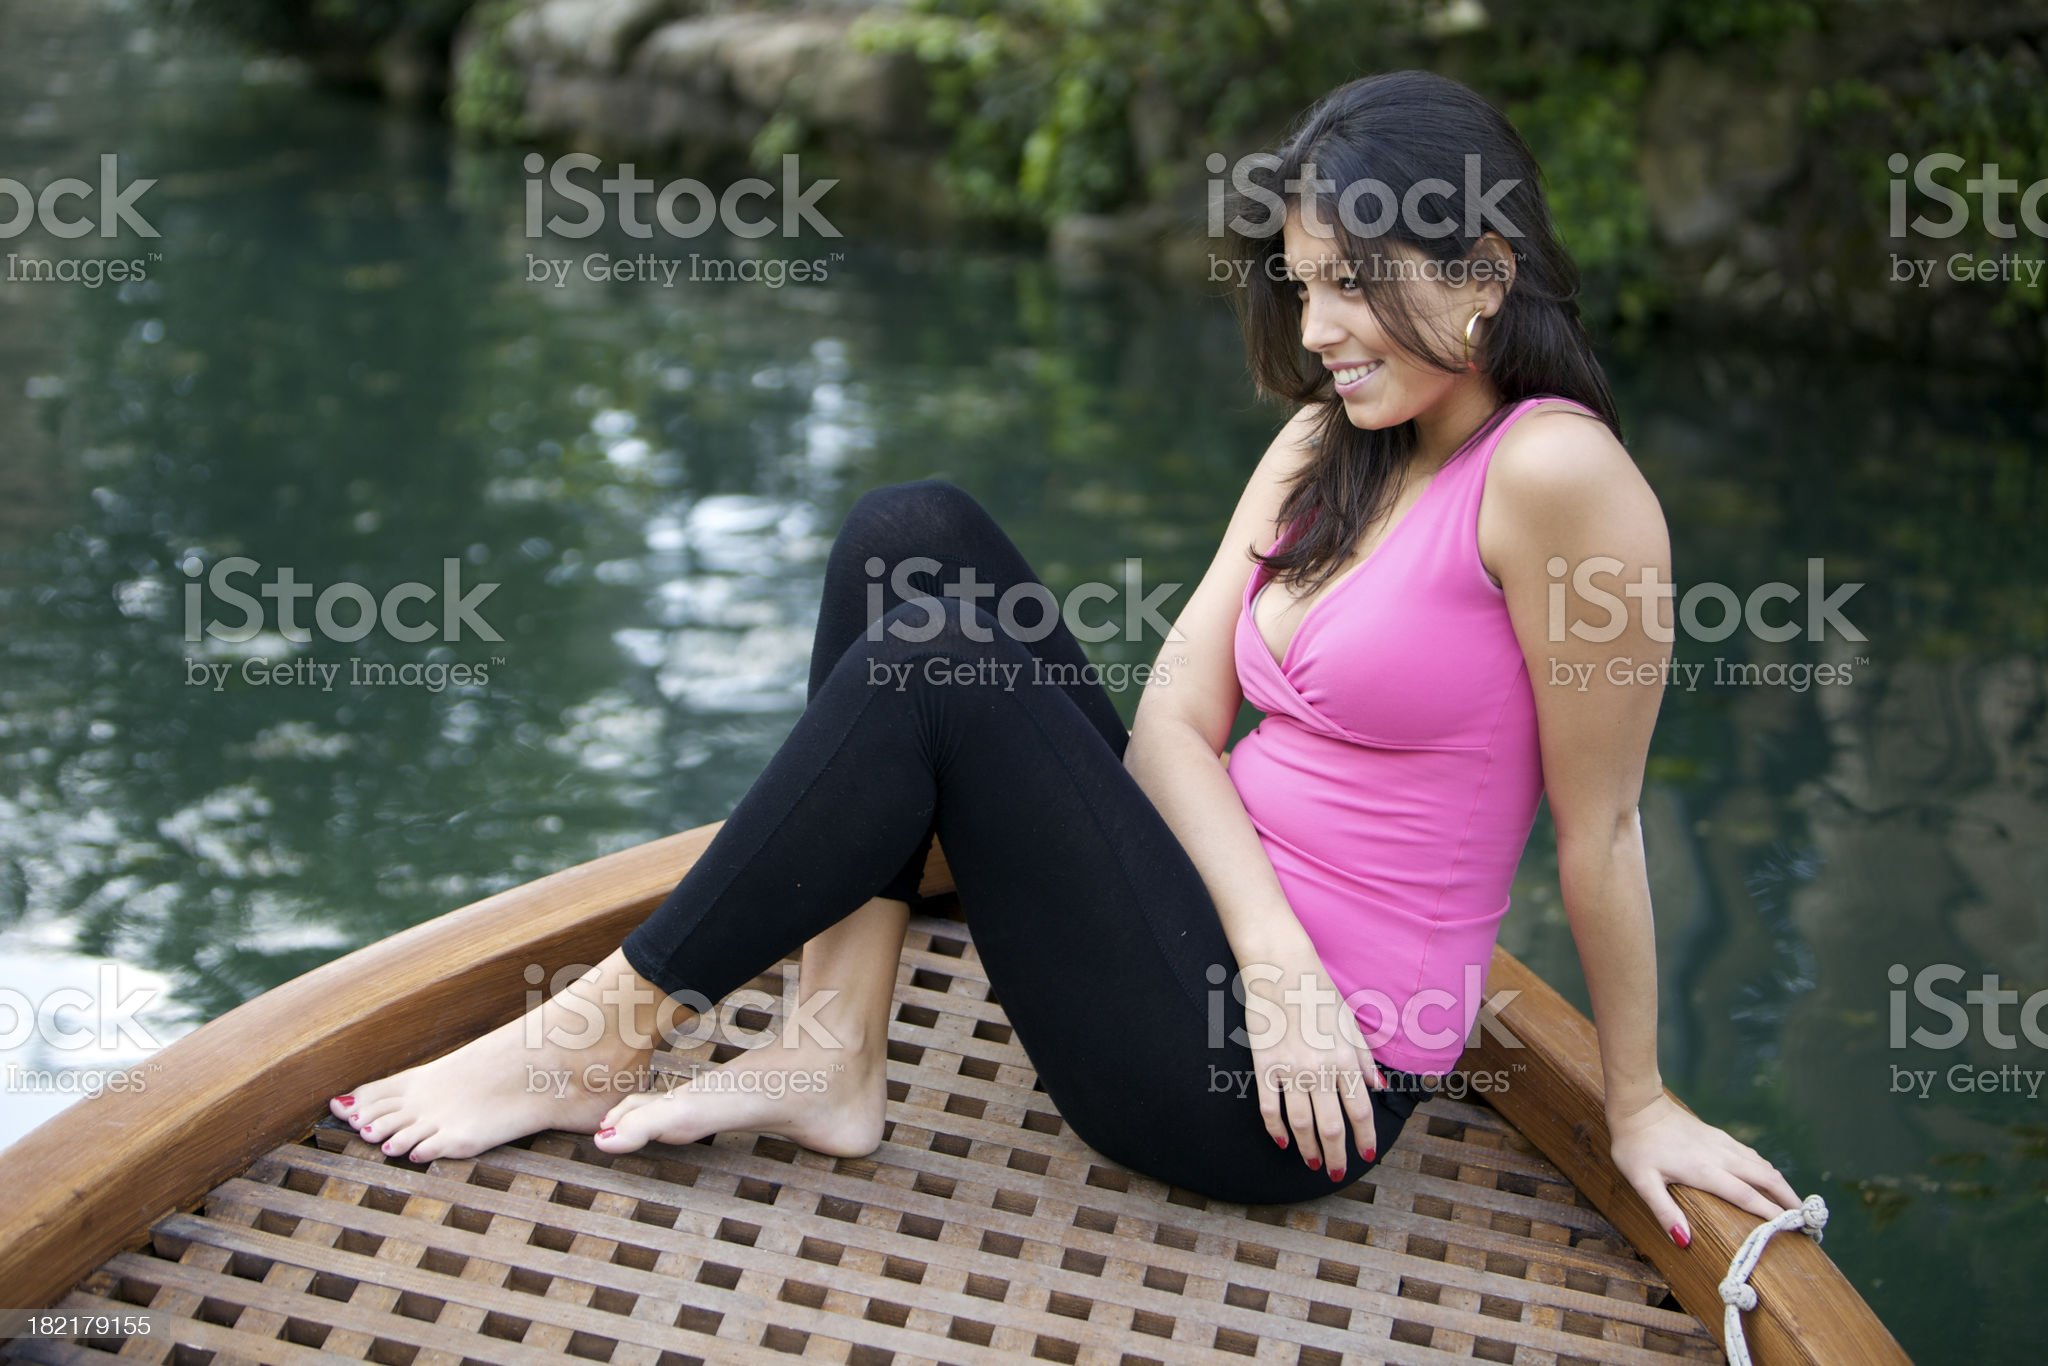 Summer life royalty-free stock photo